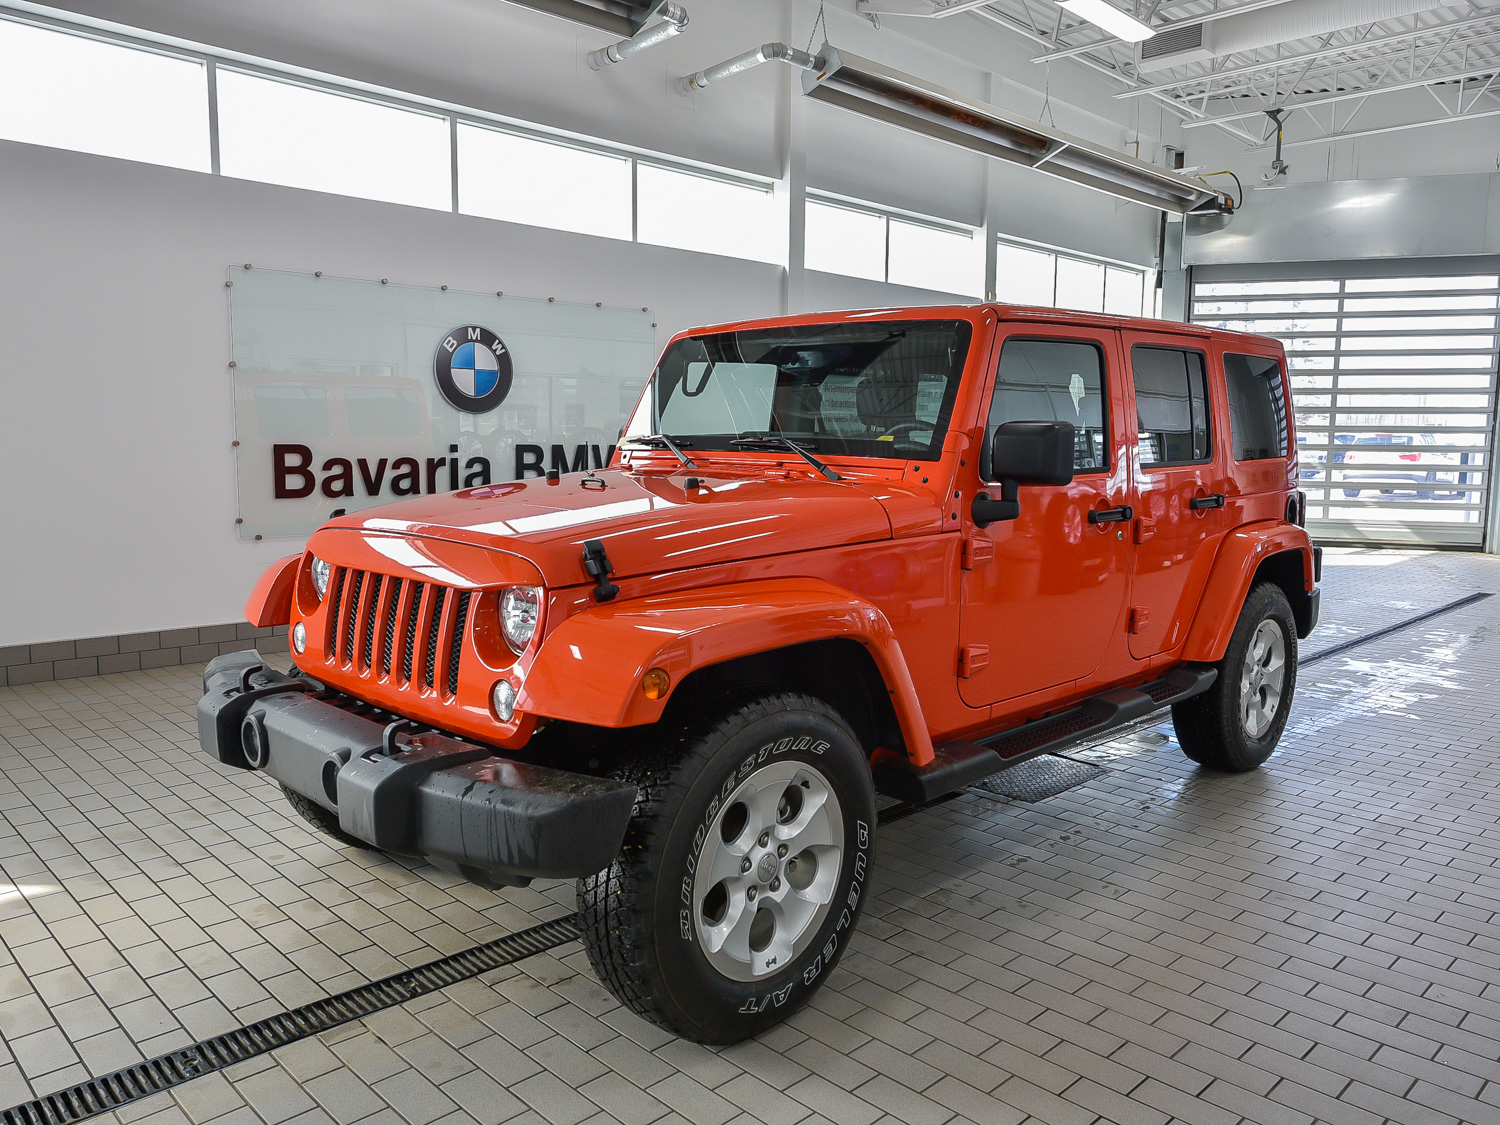 driving palm jeep one about what the learned unlimited front view trees next sport gallery photos quarter wrangler by autos white i